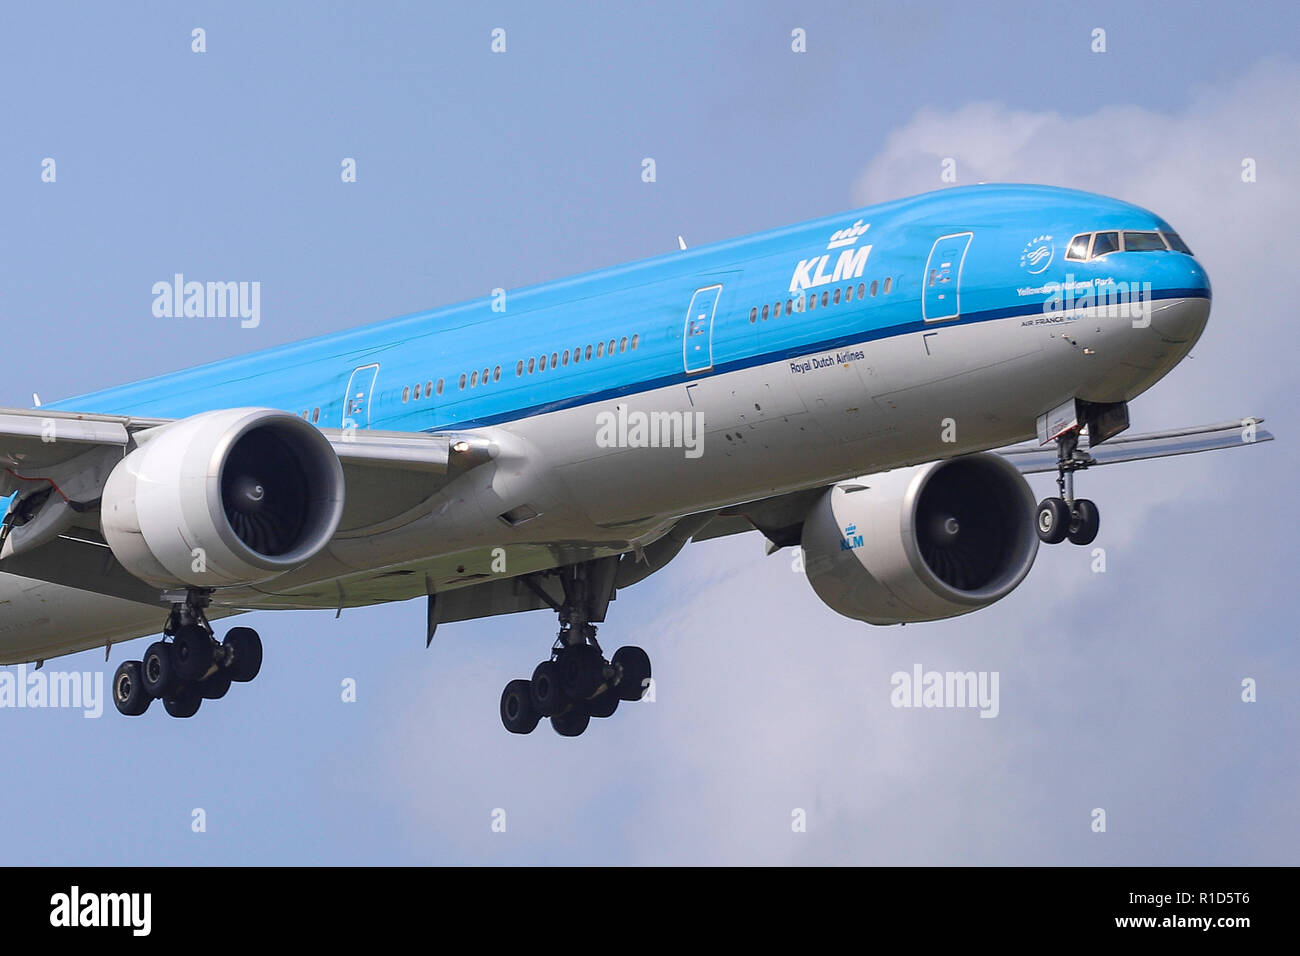 Klm Royal Dutch Airlines Boeing 777 300 A Boeing 777 300 Of Klm